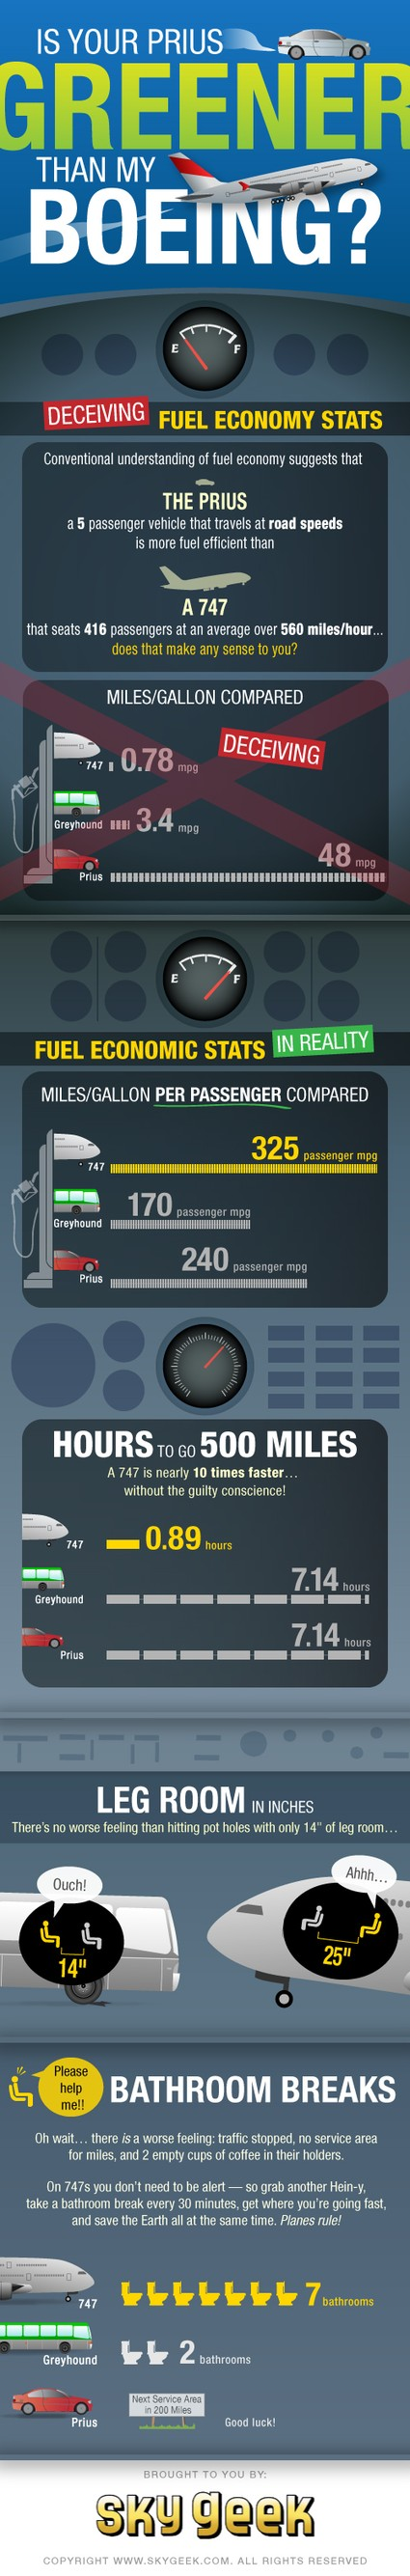 Skygeek infographic Prius greener than Boeing?